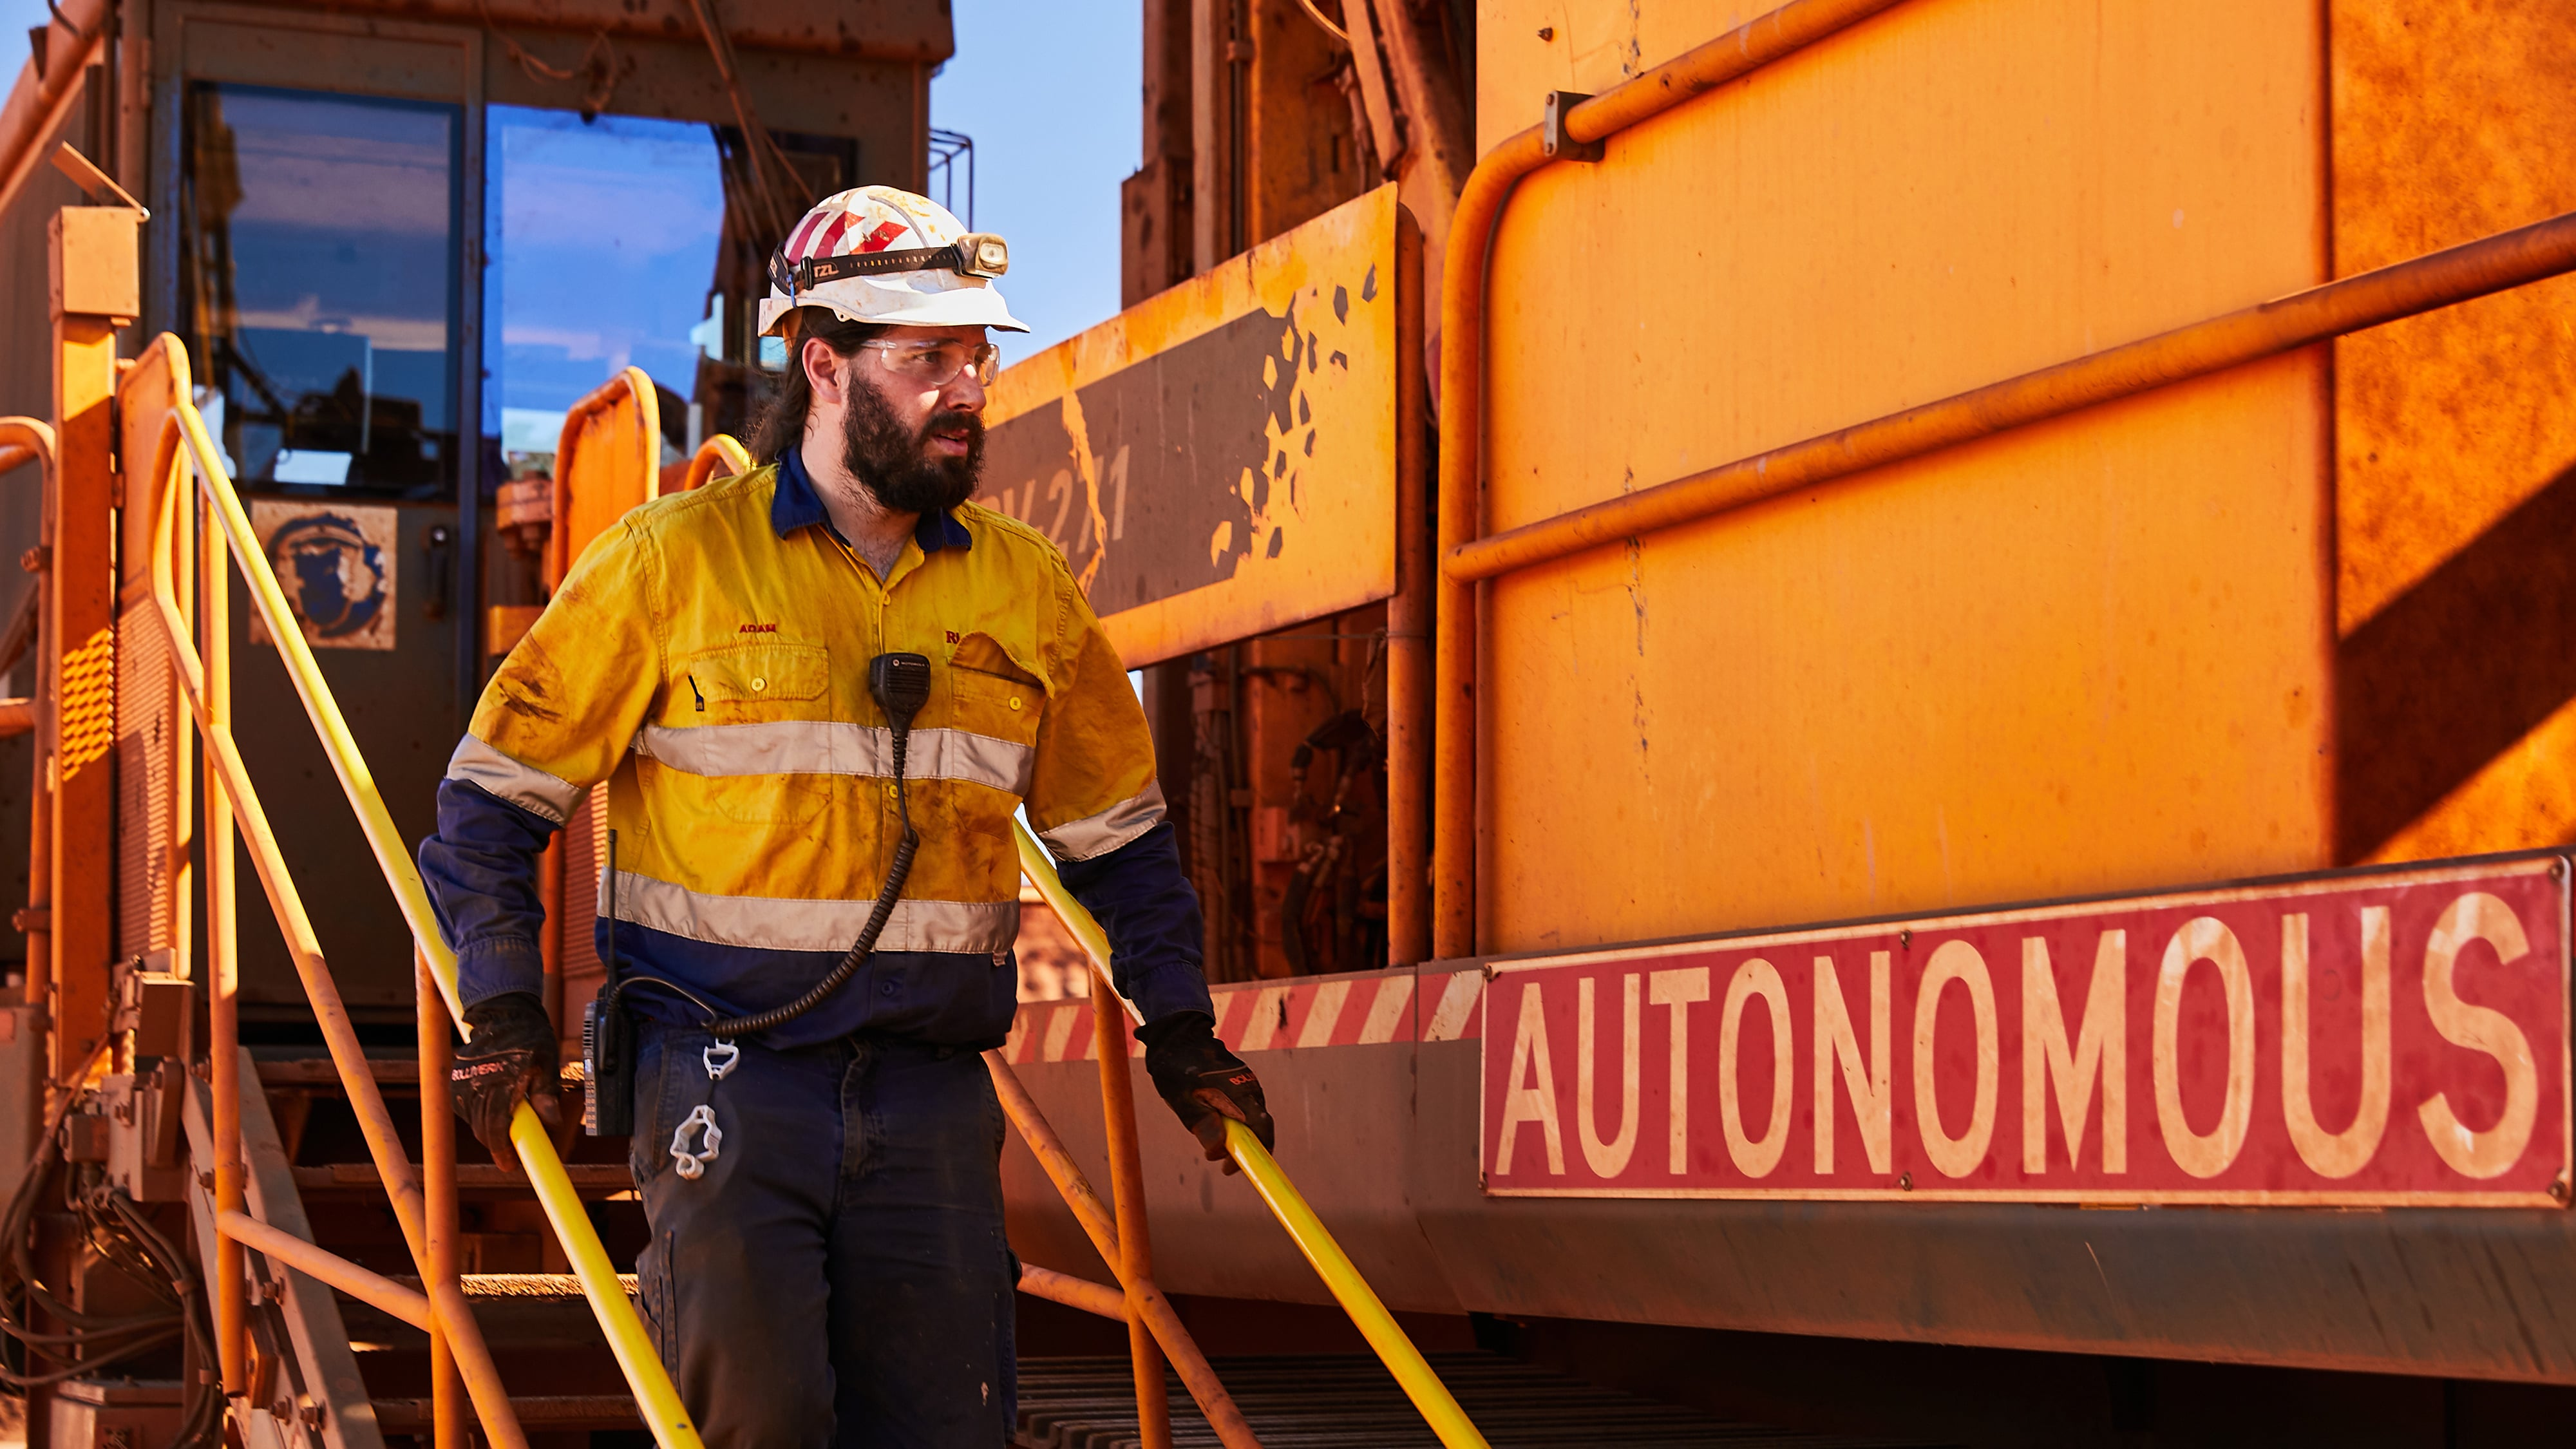 Autonomous vehicle in the Pilbara